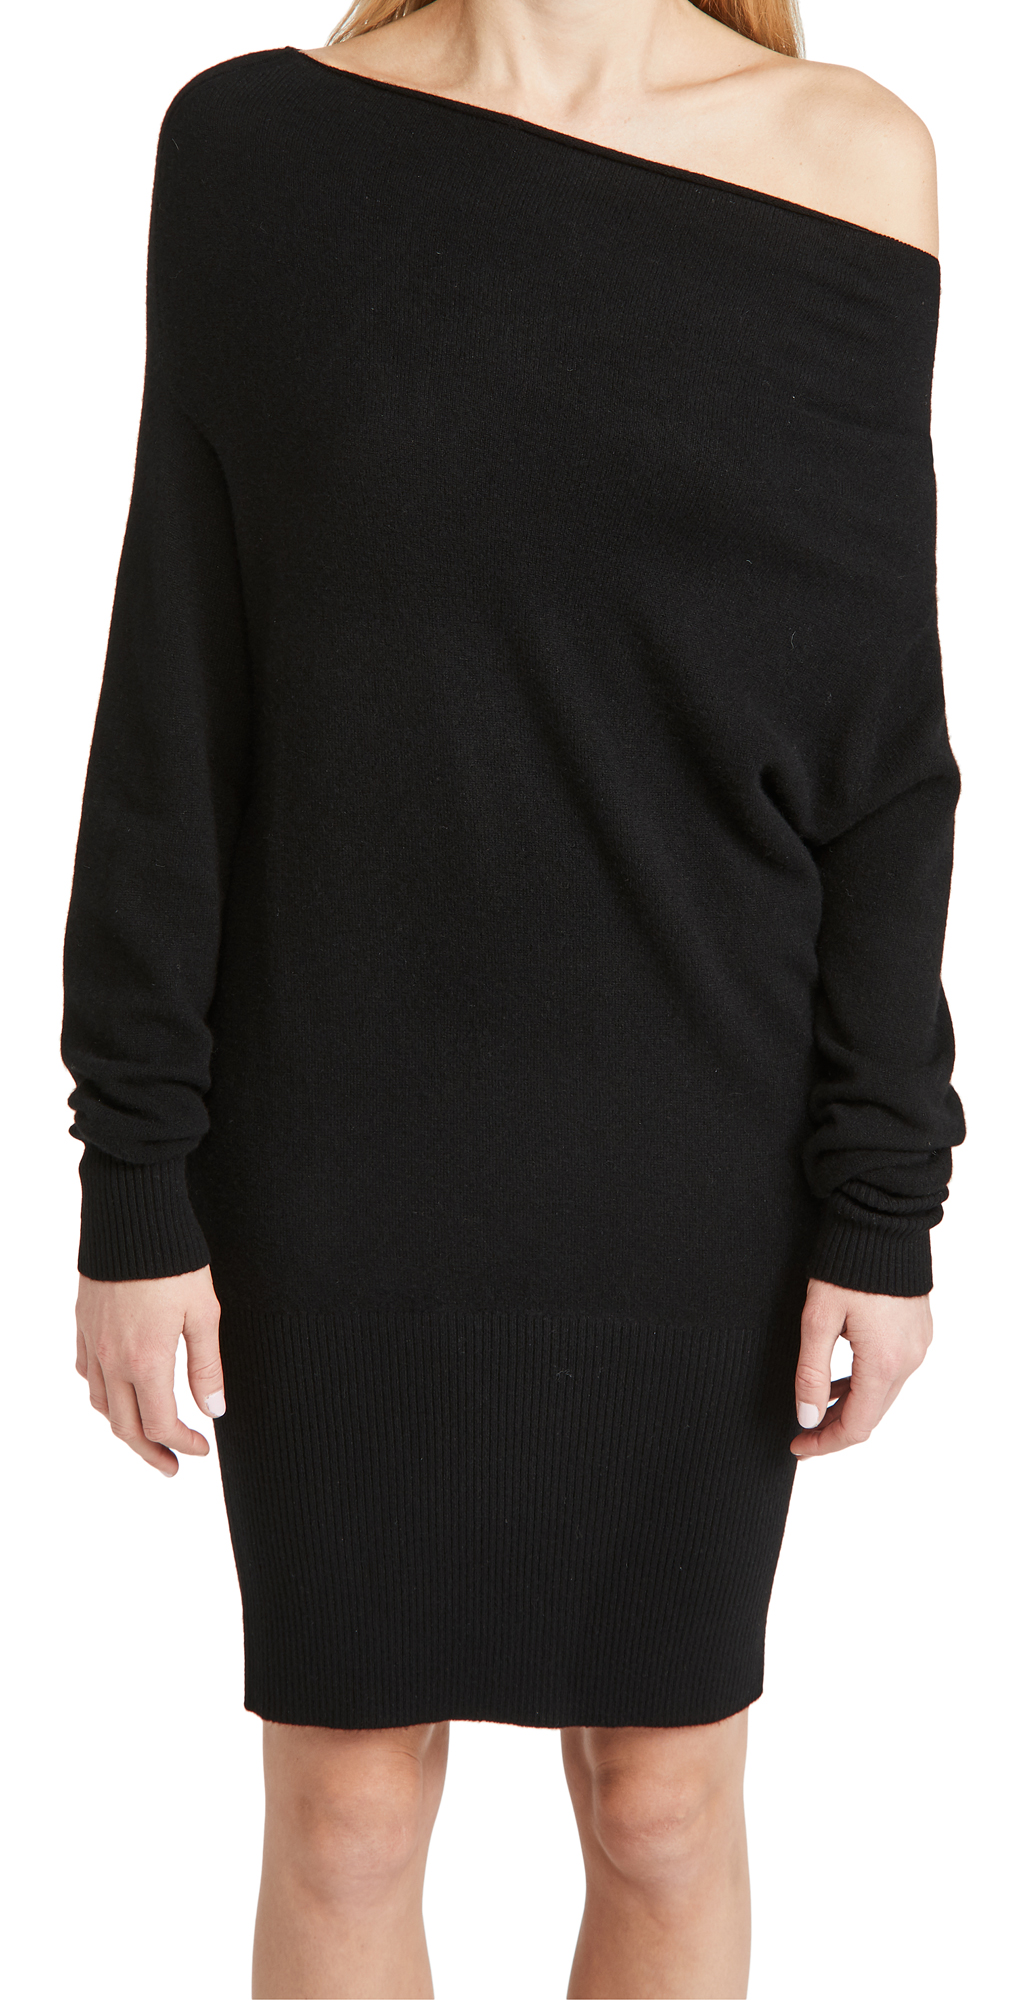 Brochu Walker Lori Cashmere Dress